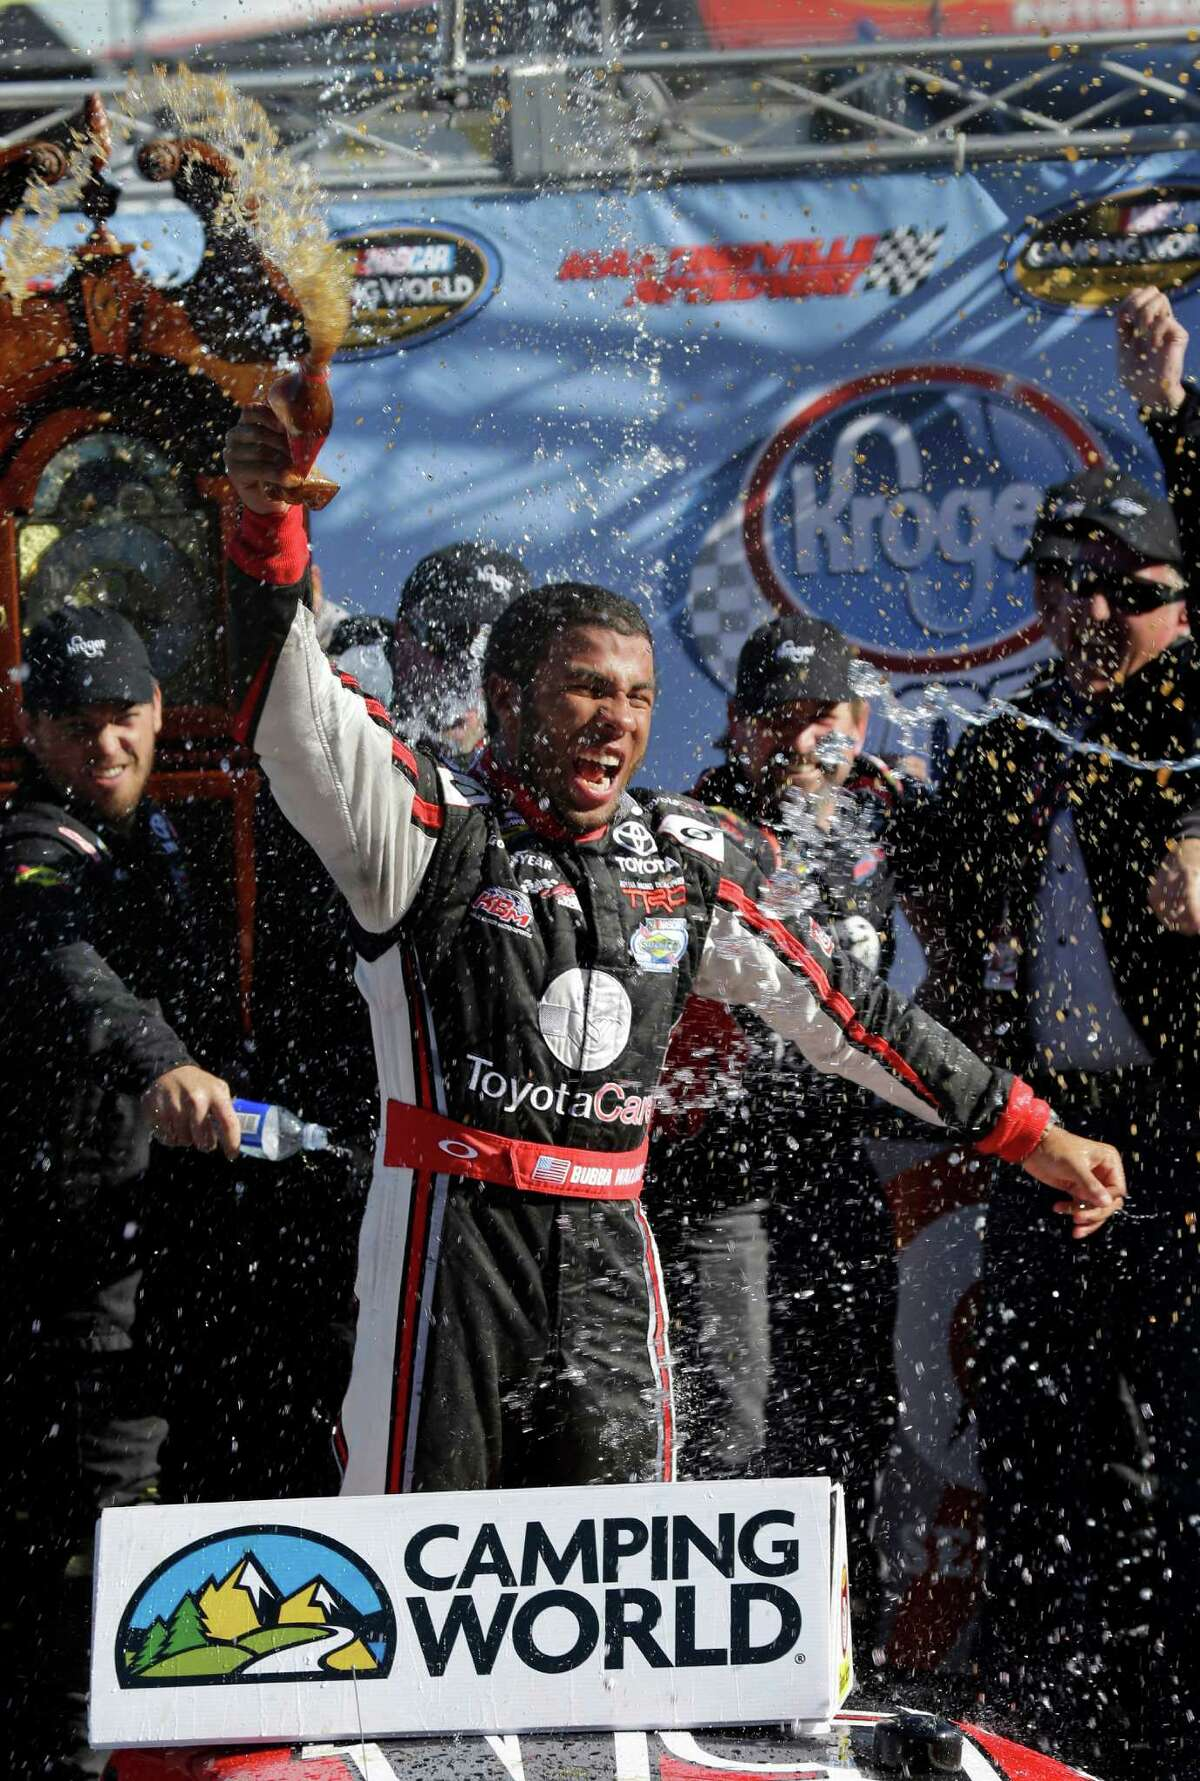 Driver Darrell Wallace Jr. celebrates in Victory Lane winning the NASCAR Truck Series auto race at Martinsville Speedway in Martinsville, Va., Saturday, Oct. 26, 2013. (AP Photo/Steve Helber) ORG XMIT: VASH108